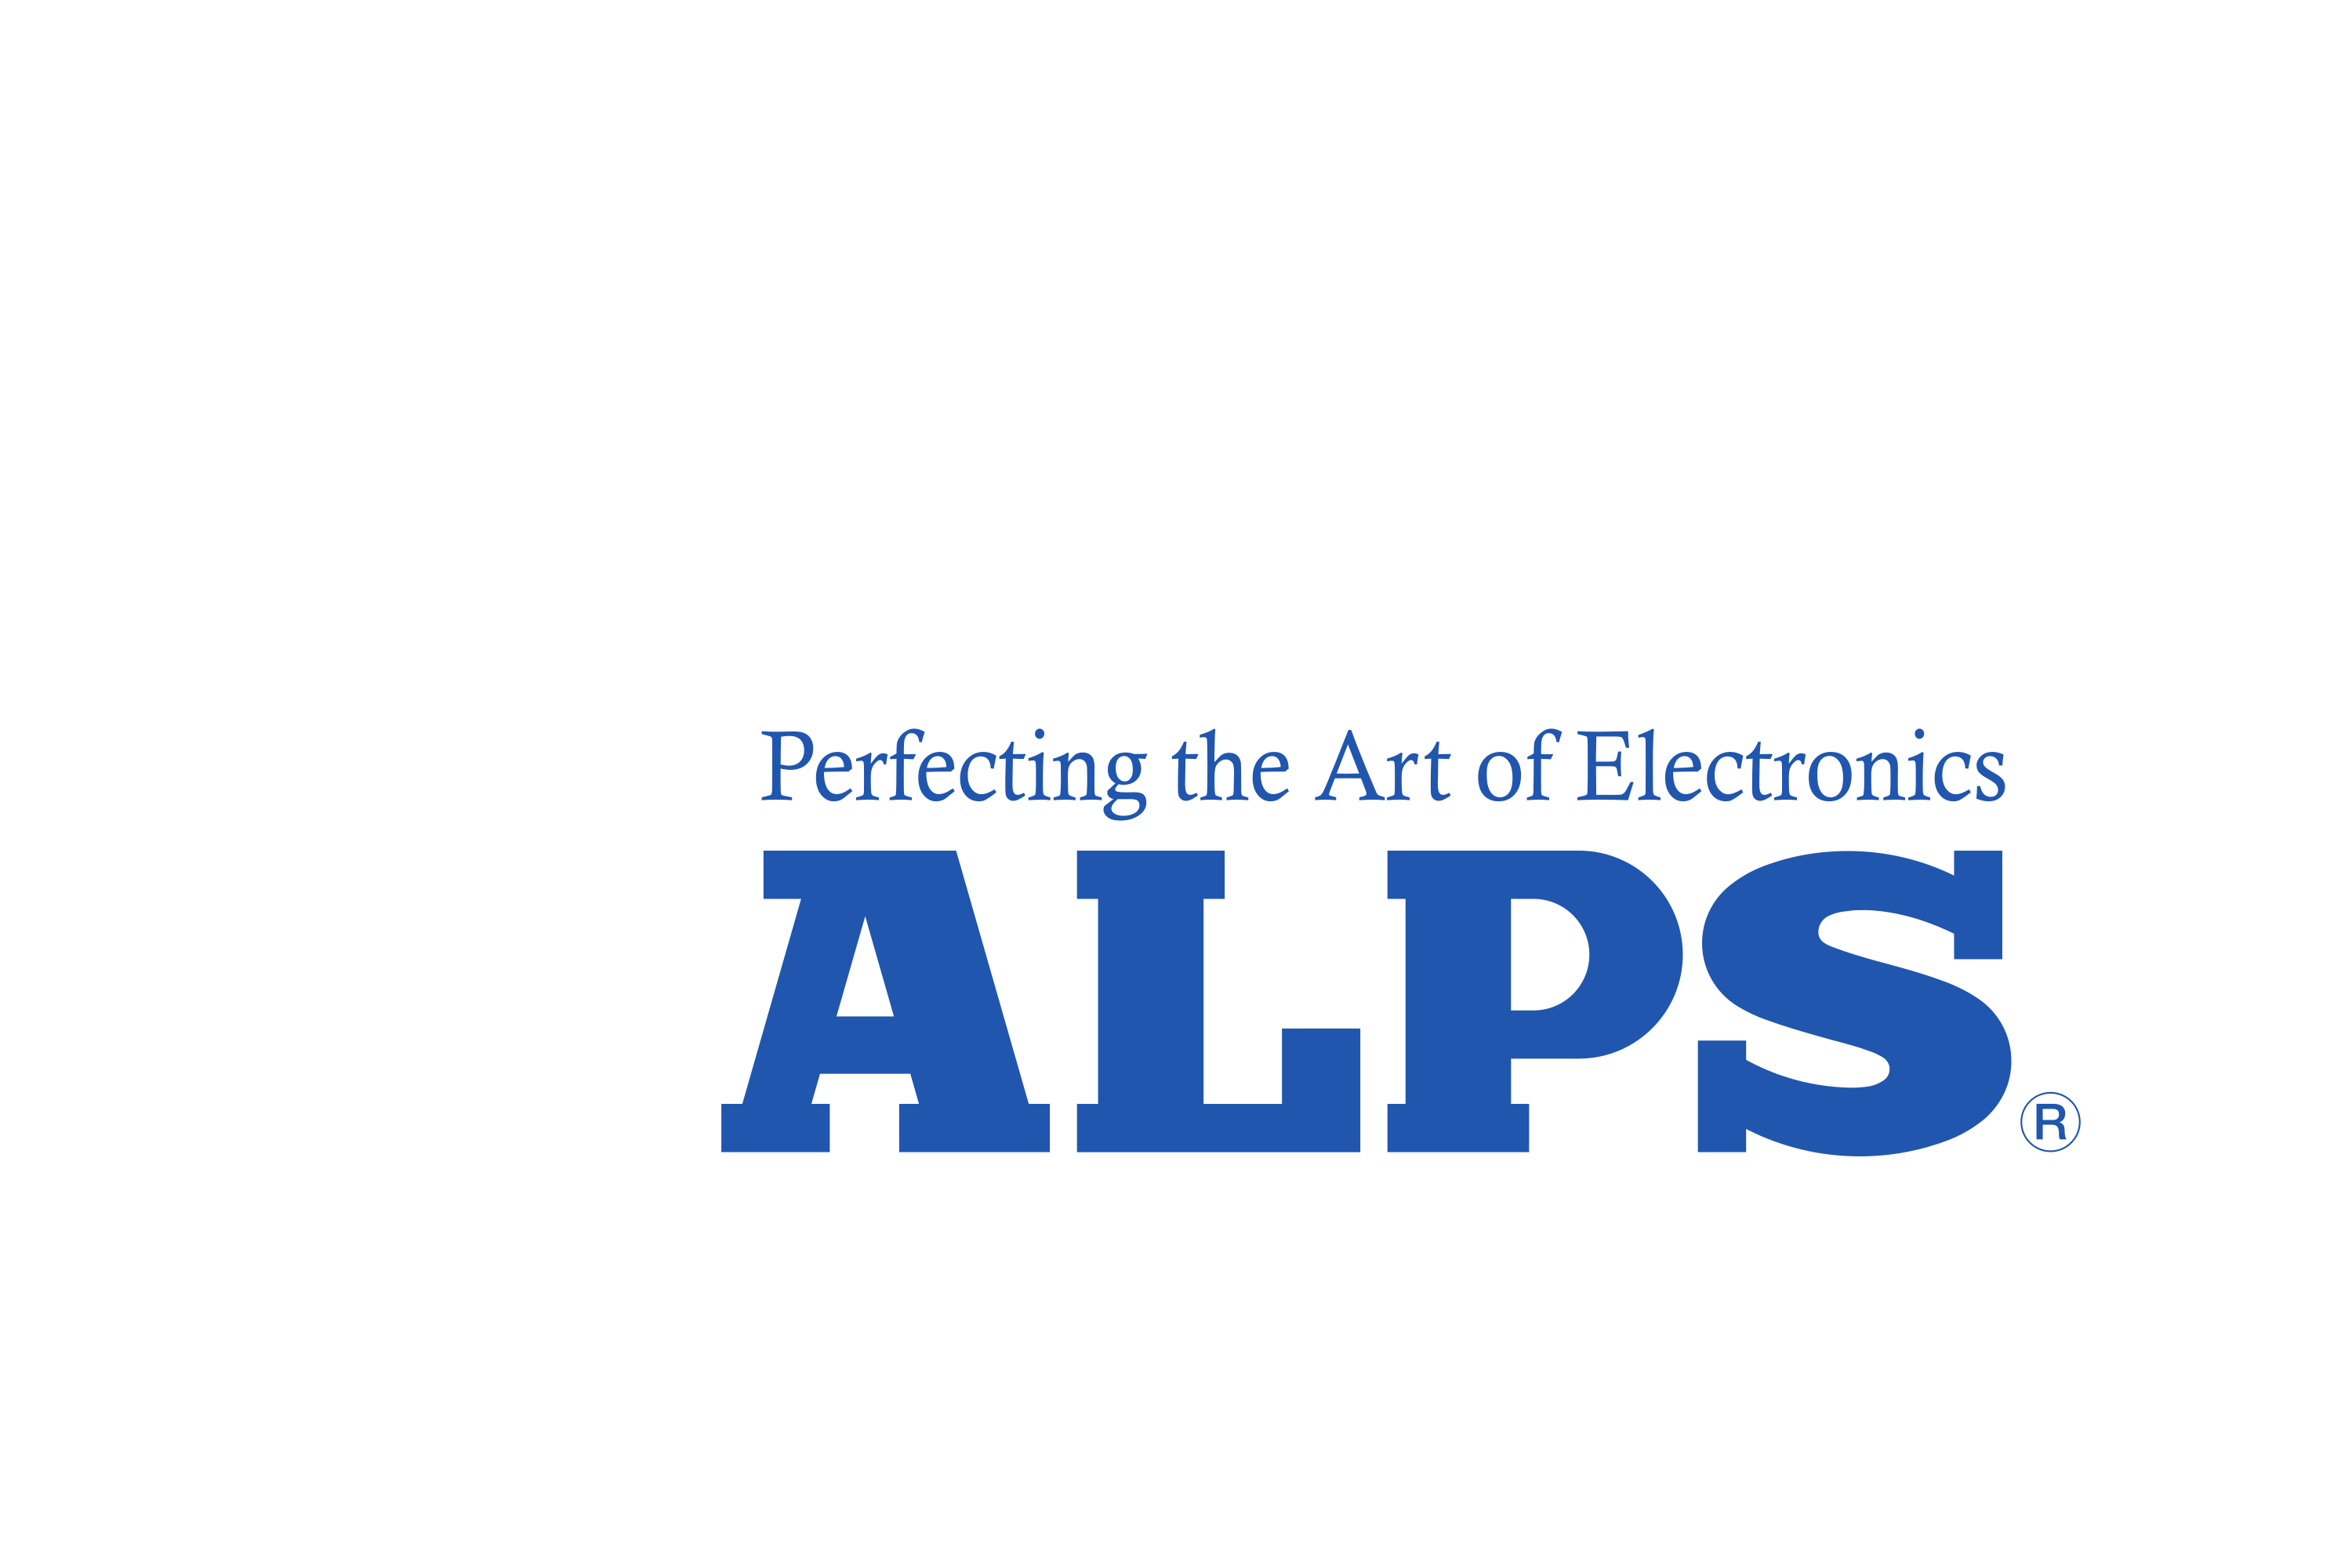 Download Alps Electric Logo in SVG Vector or PNG File Format ...